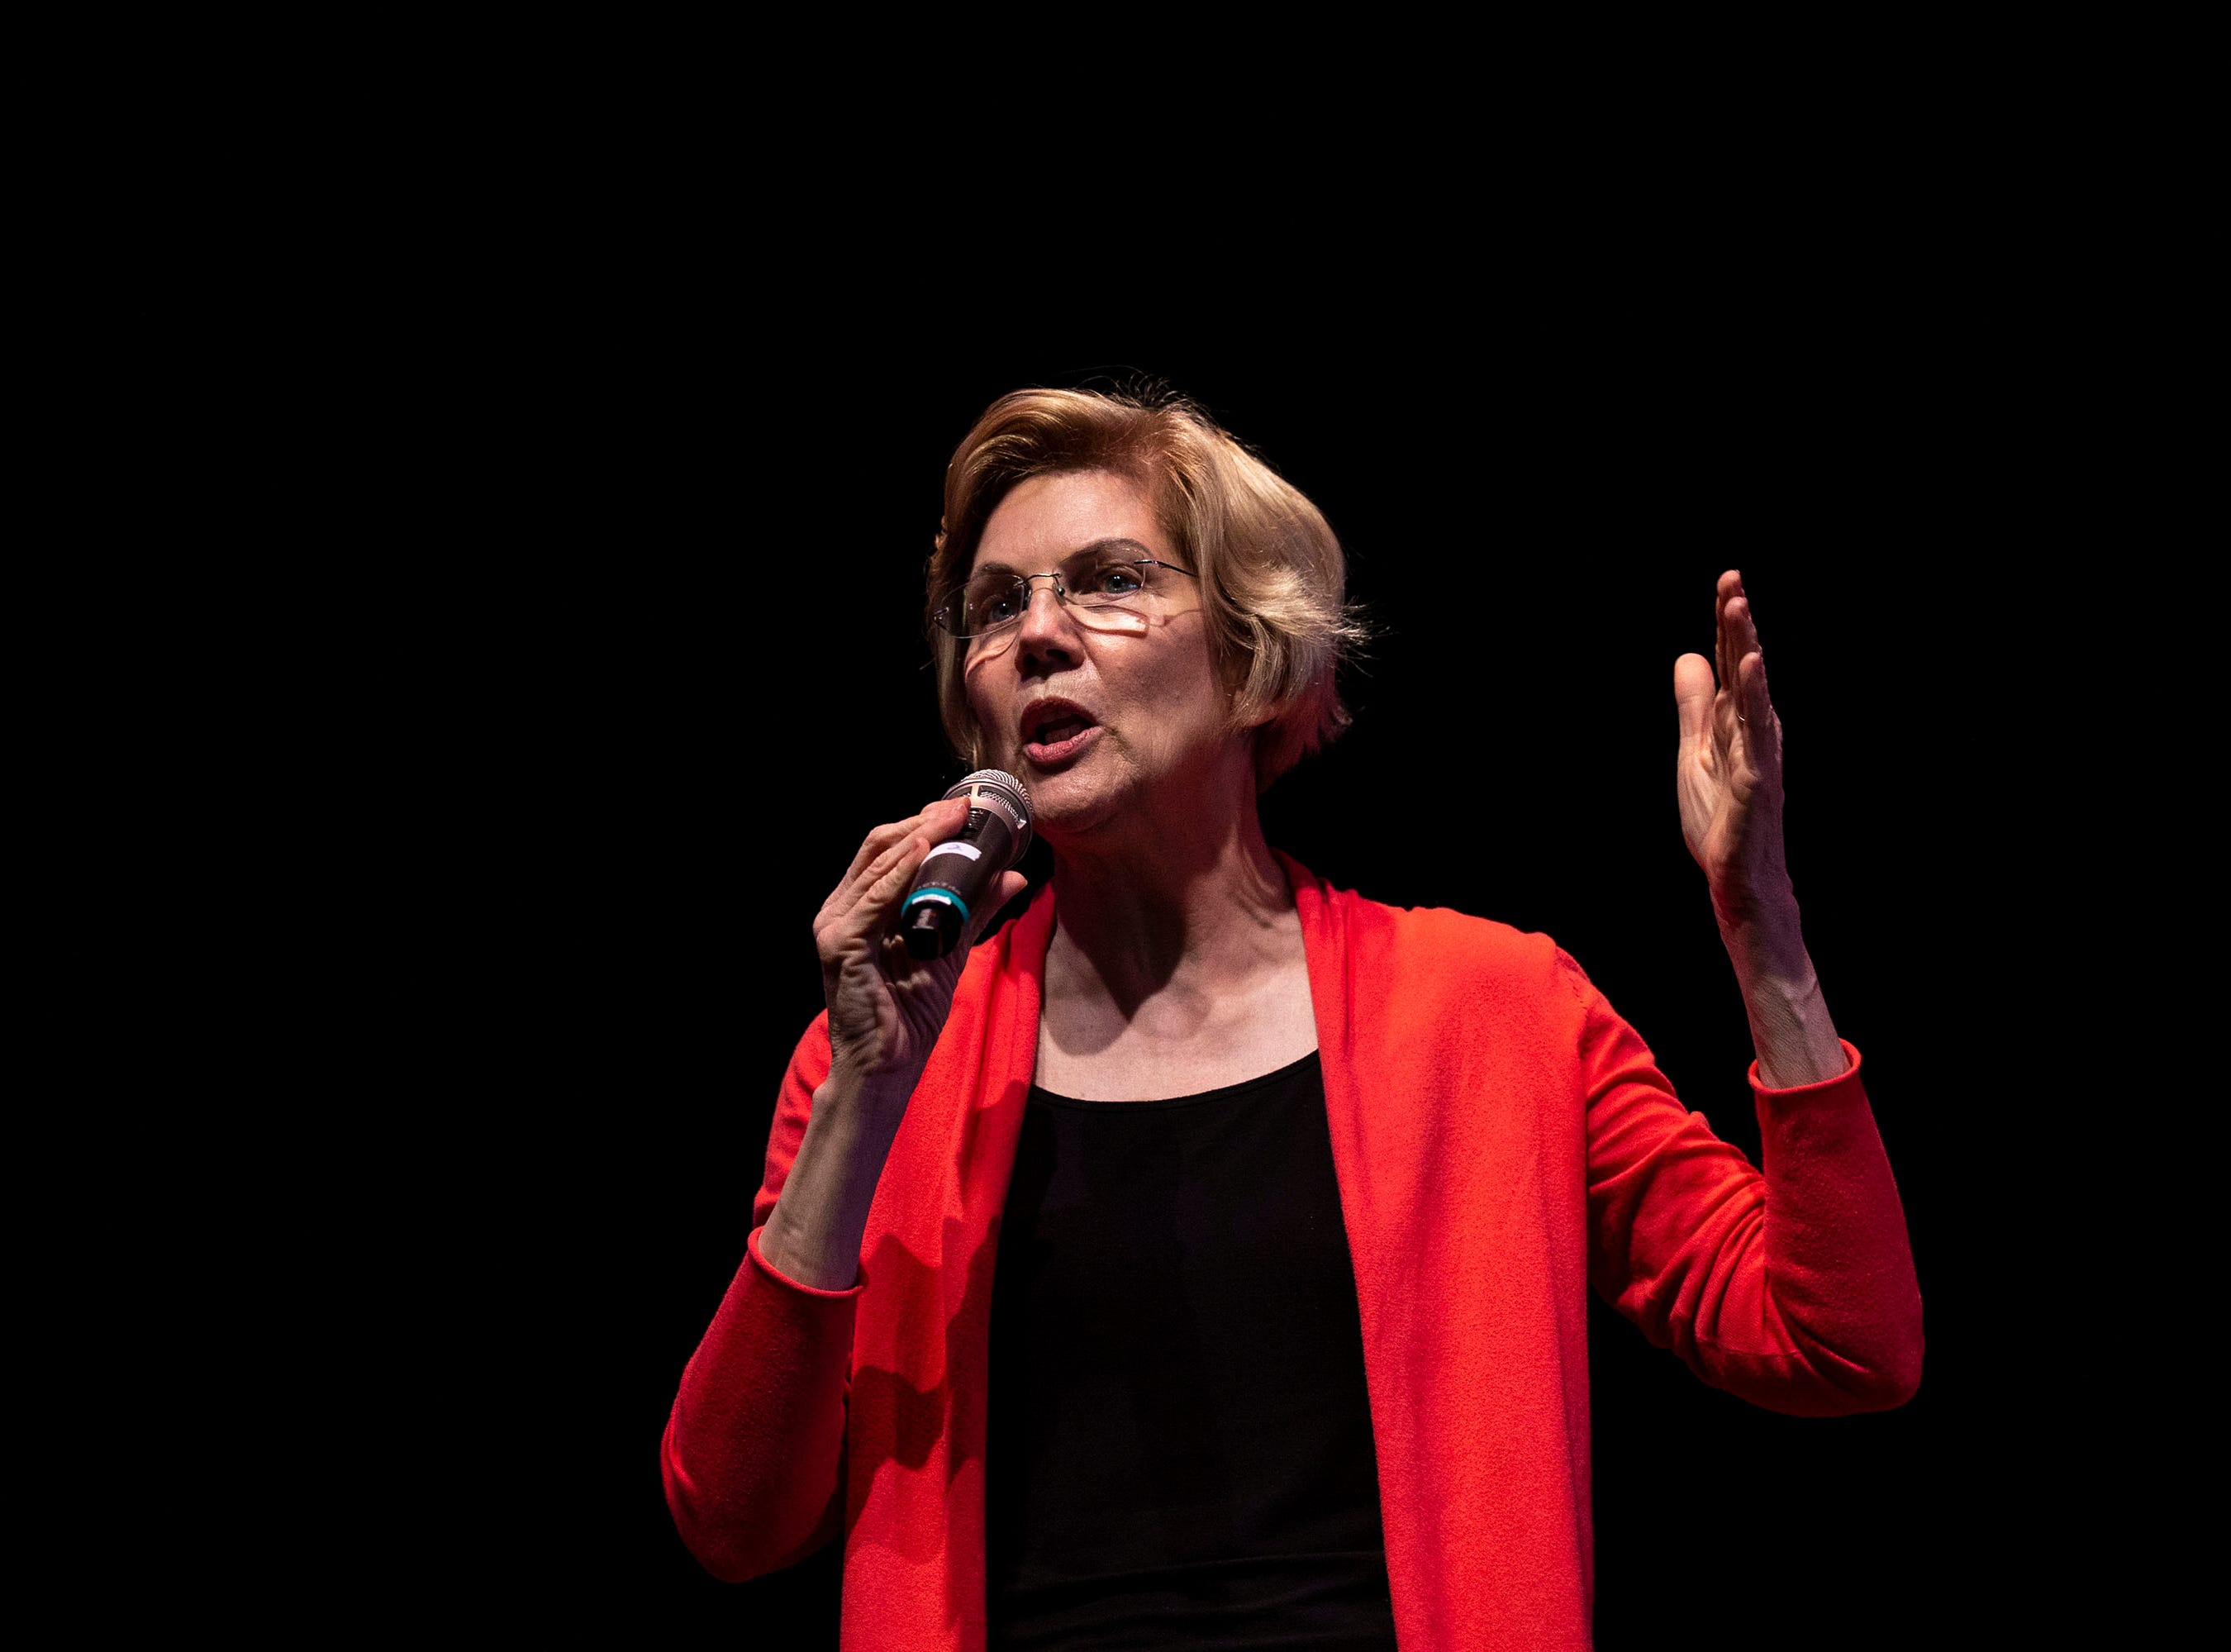 U.S. Sen. Elizabeth Warren, D-Mass., gives her stump speech and answers questions from the audience during a Linn Phoenix Club meet and greet on Thursday, April 25, 2019, in Cedar Rapids.